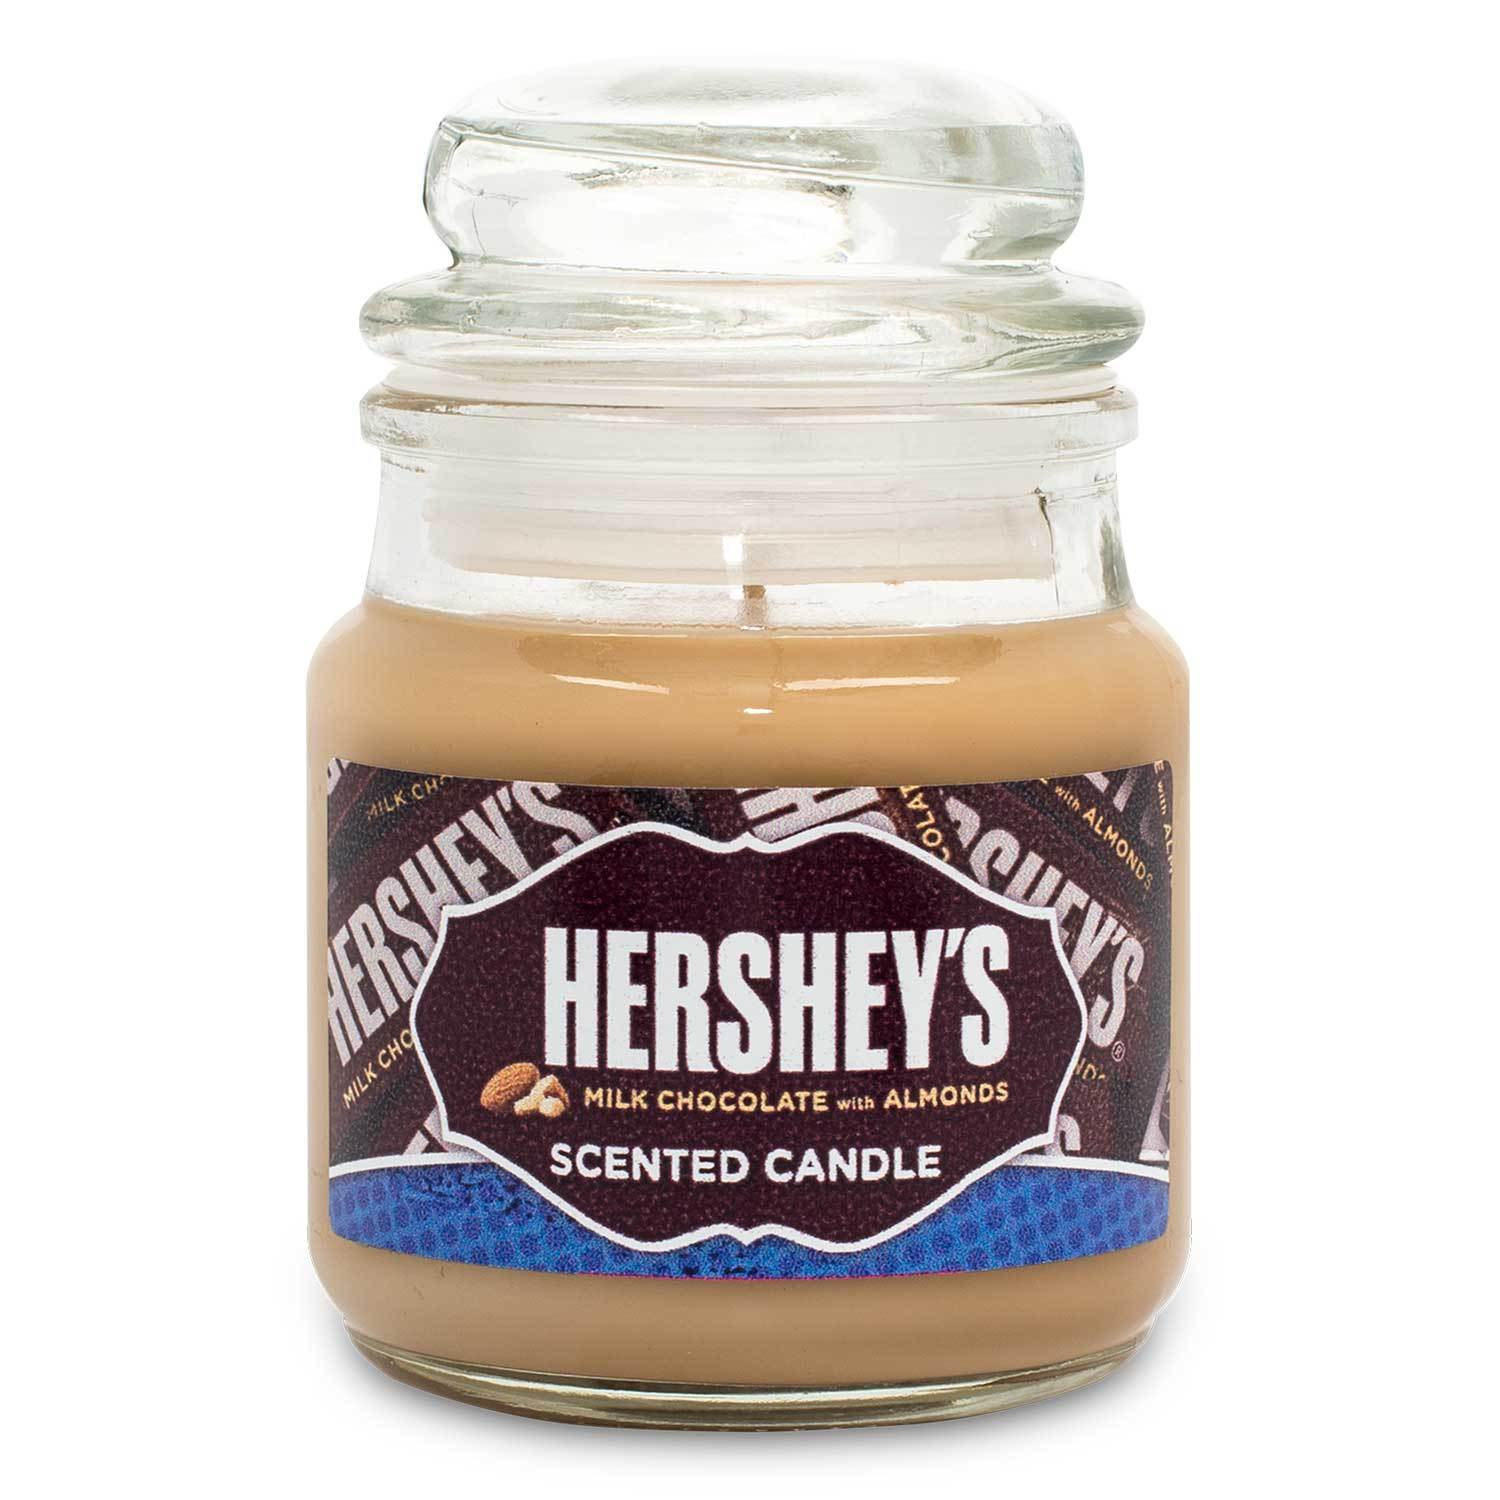 HERSHEY'S Milk Chocolate with Almonds Scented Mini Candle Candles Candlemart.com $ 2.99